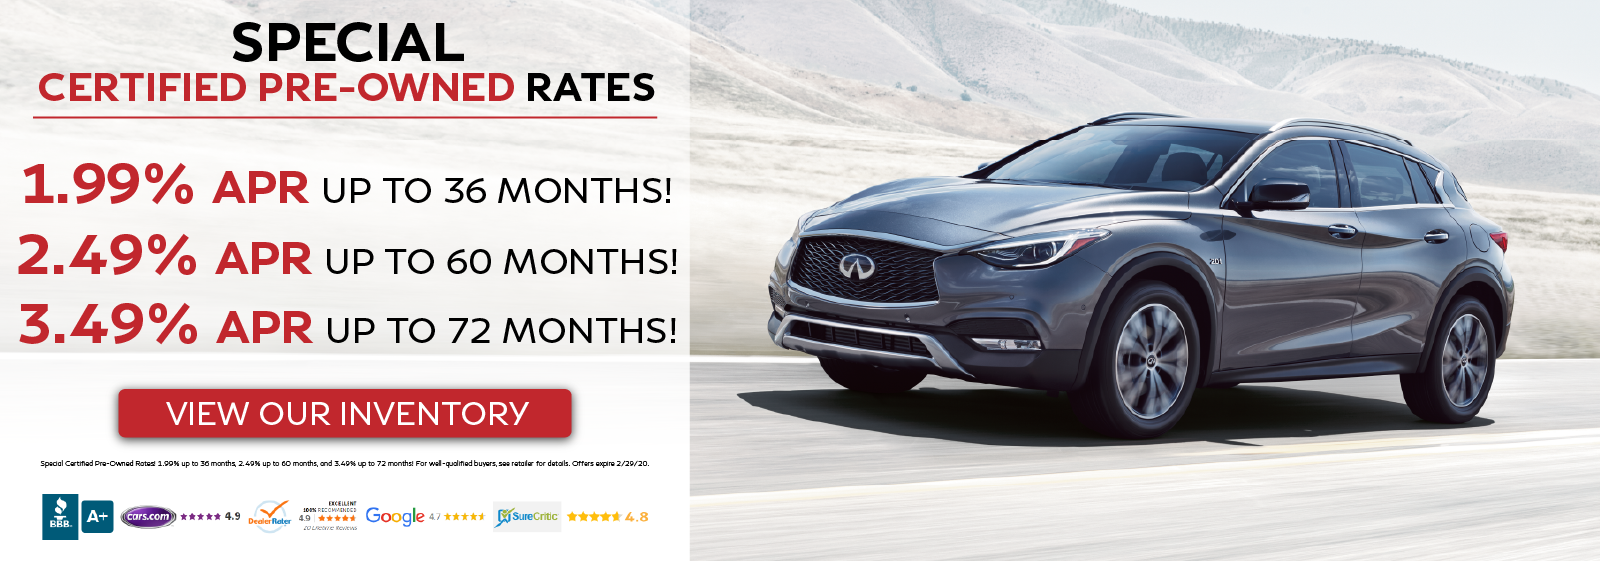 Special Certified Pre-Owned Rates - 1.99% APR up to 36 months OR 2.49% APR up to 60 months OR 3.49% APR up to 72 months - View Our Inventory!